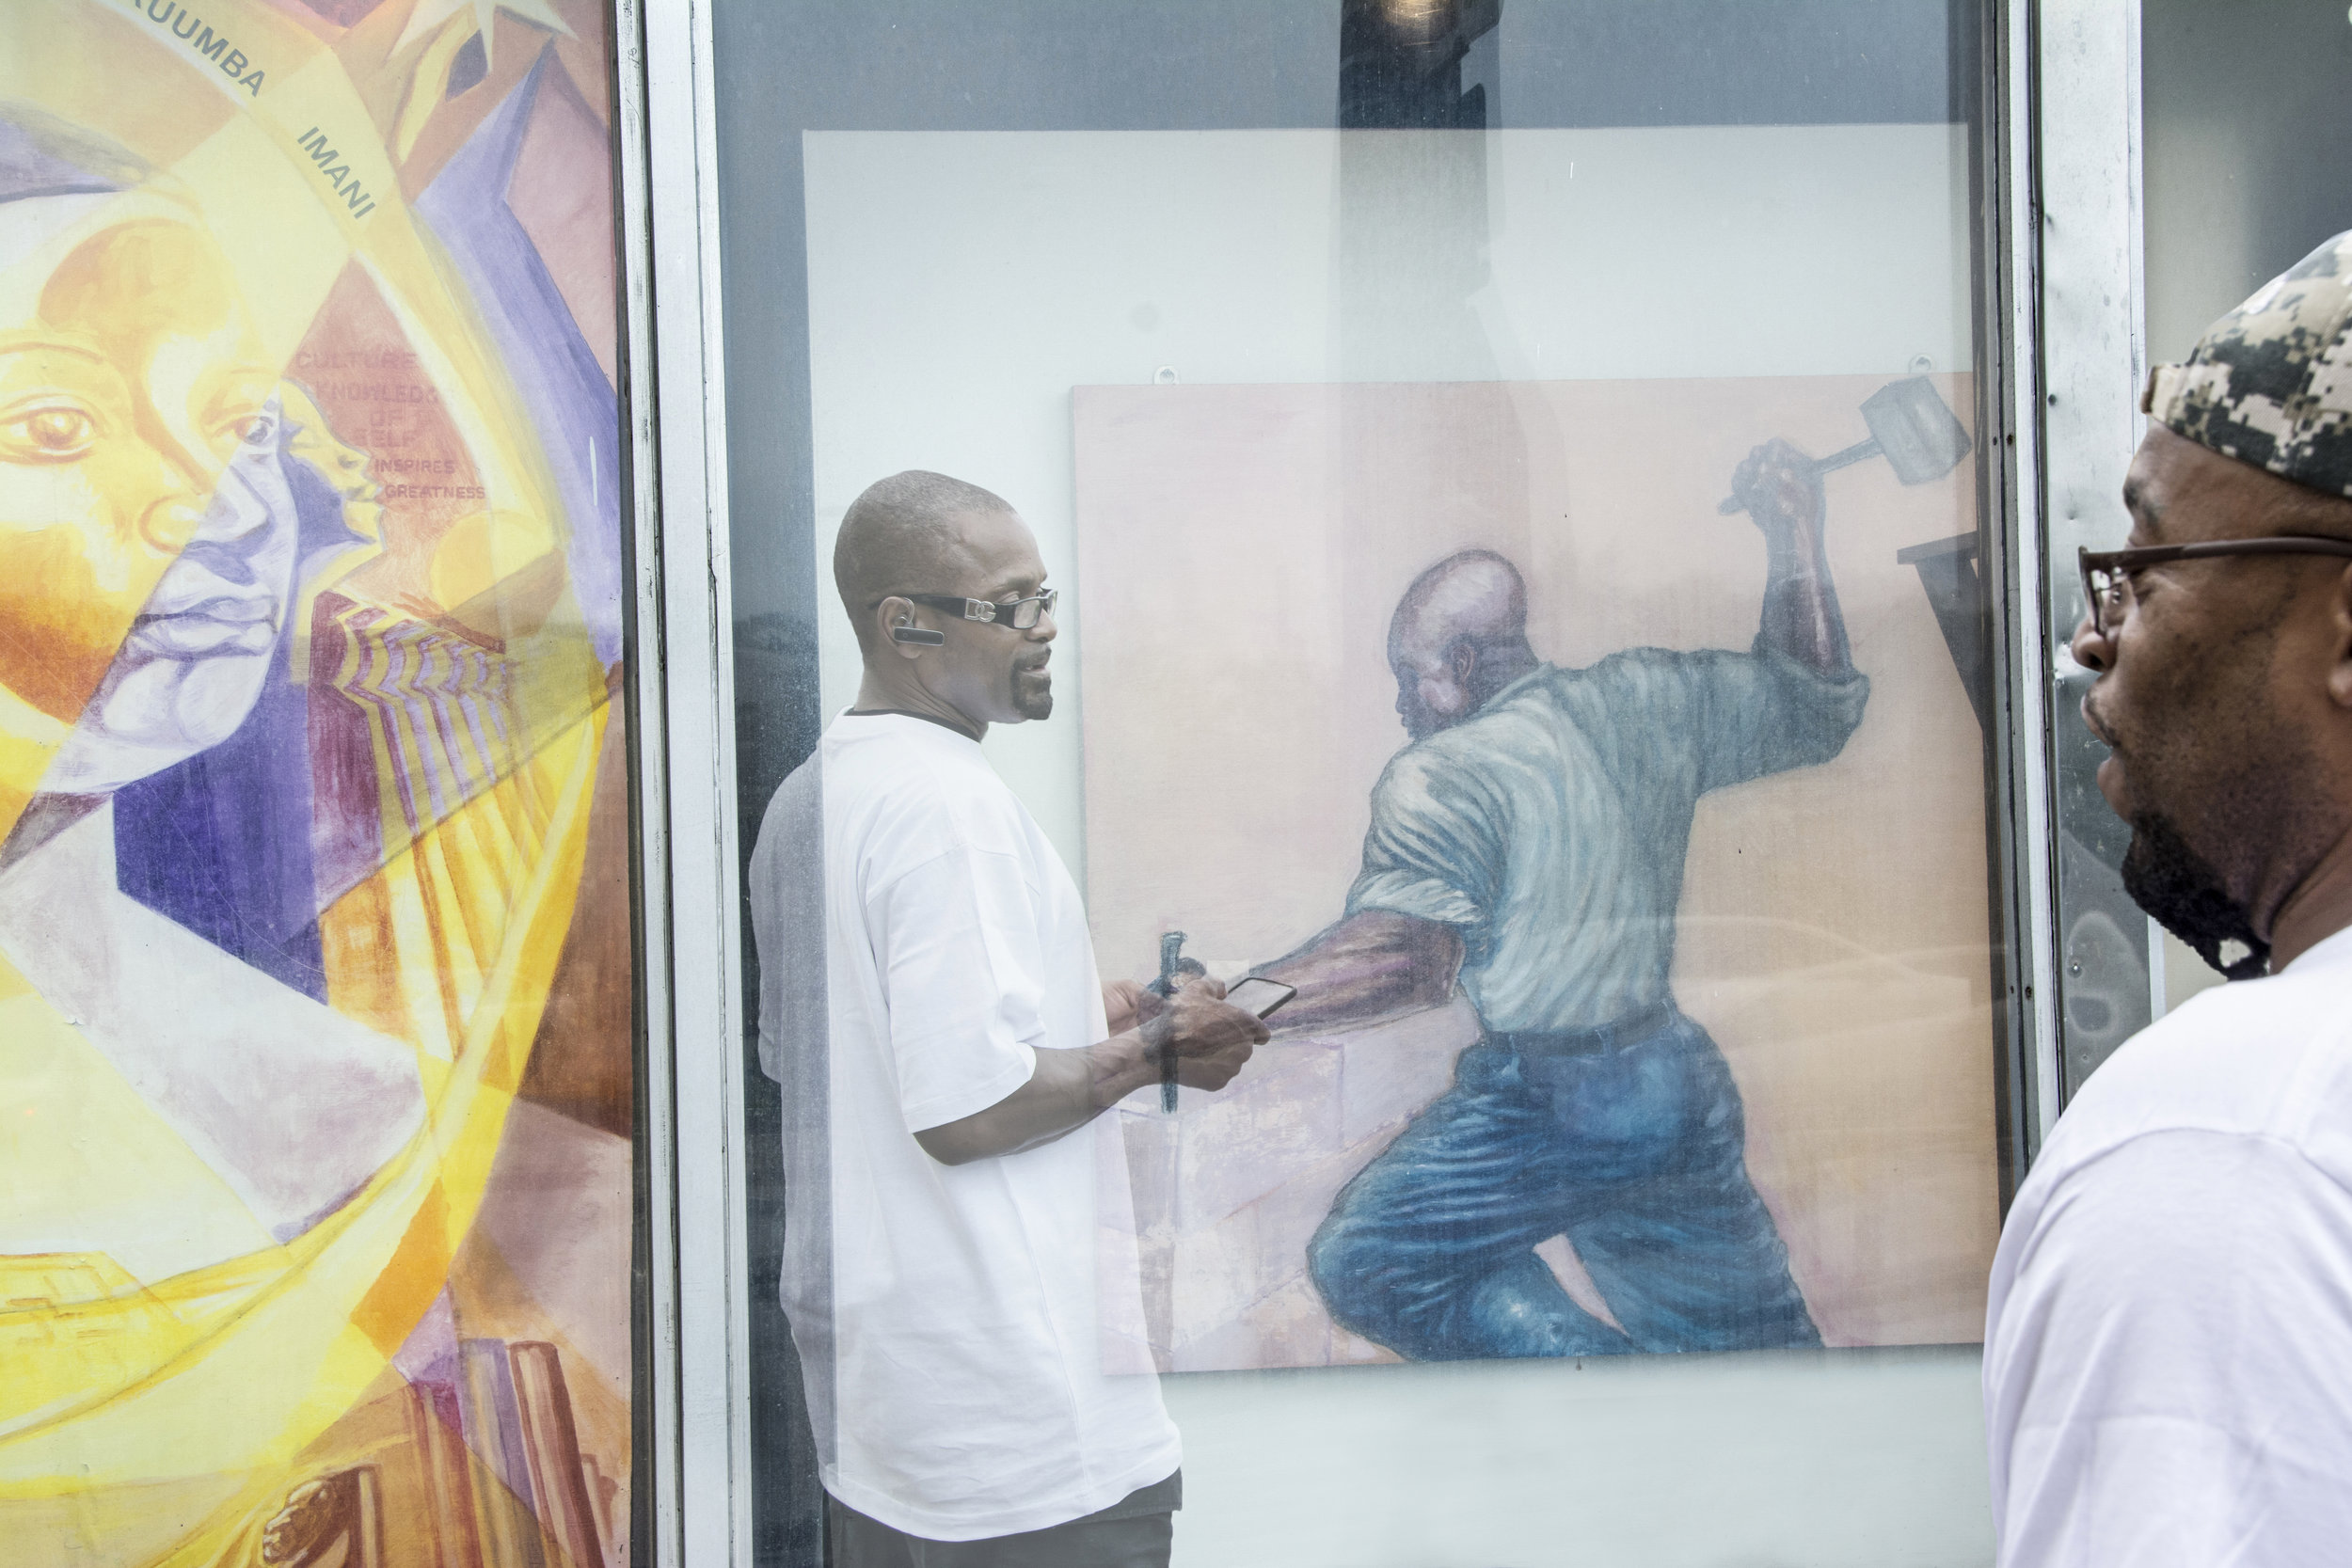 The two gentleman in this image worked at an audio store. I asked them to pose in front of an abandoned store window that showed the African American slave at work. There are four faces, each pair facing one another. In the creation of this image, I was hoping to symbolize the African American male experience.